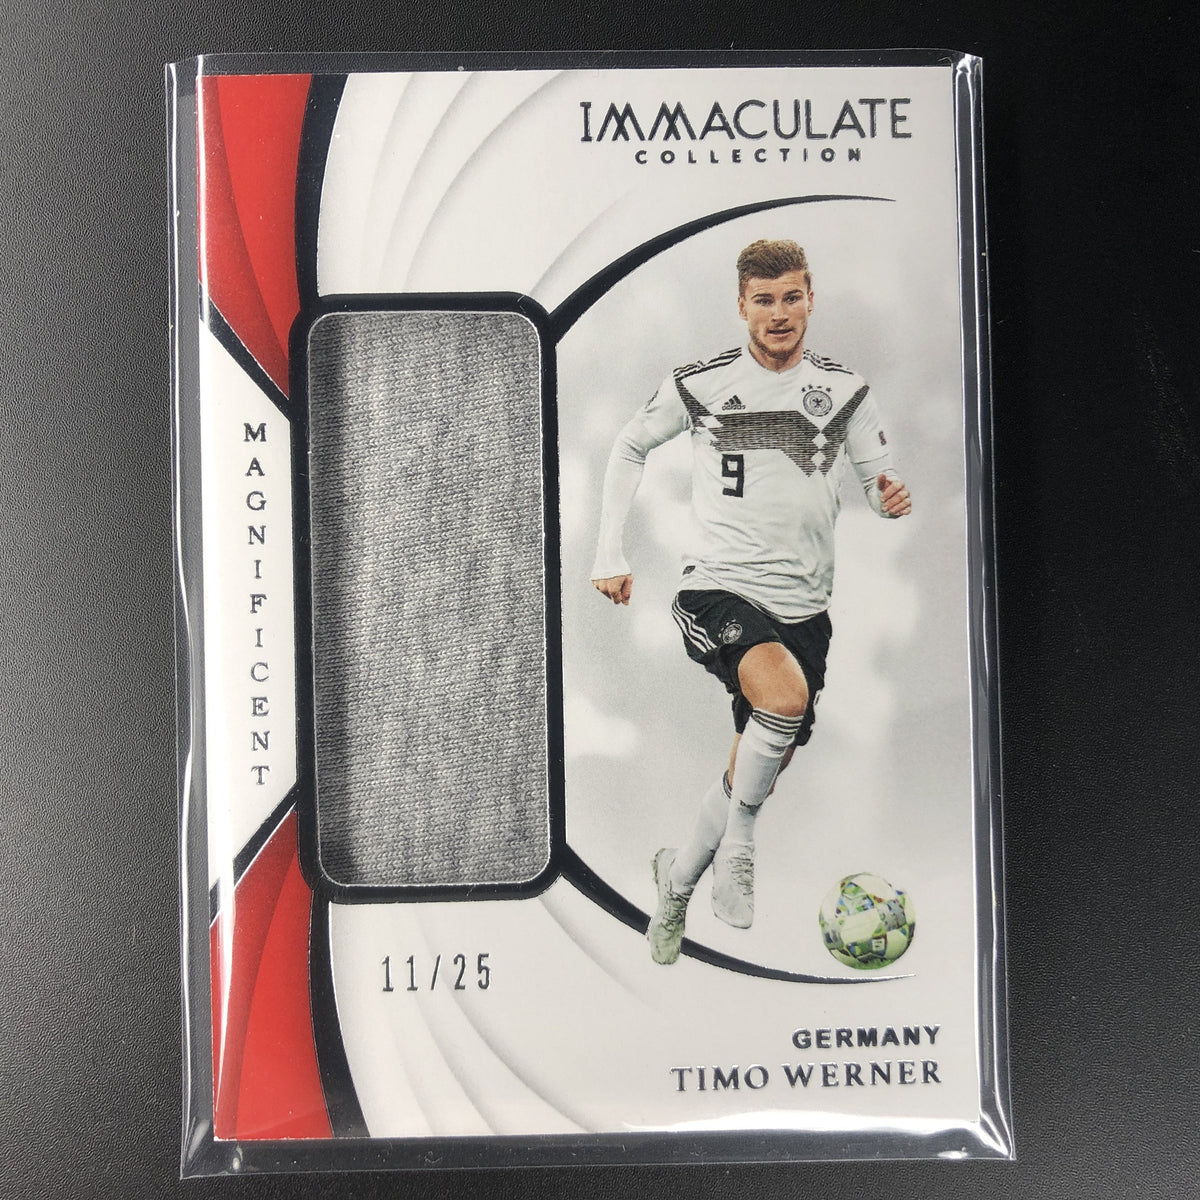 the latest 20bca 24bc5 2018-19 Immaculate TIMO WERNER Magnificent Jersey 11/25